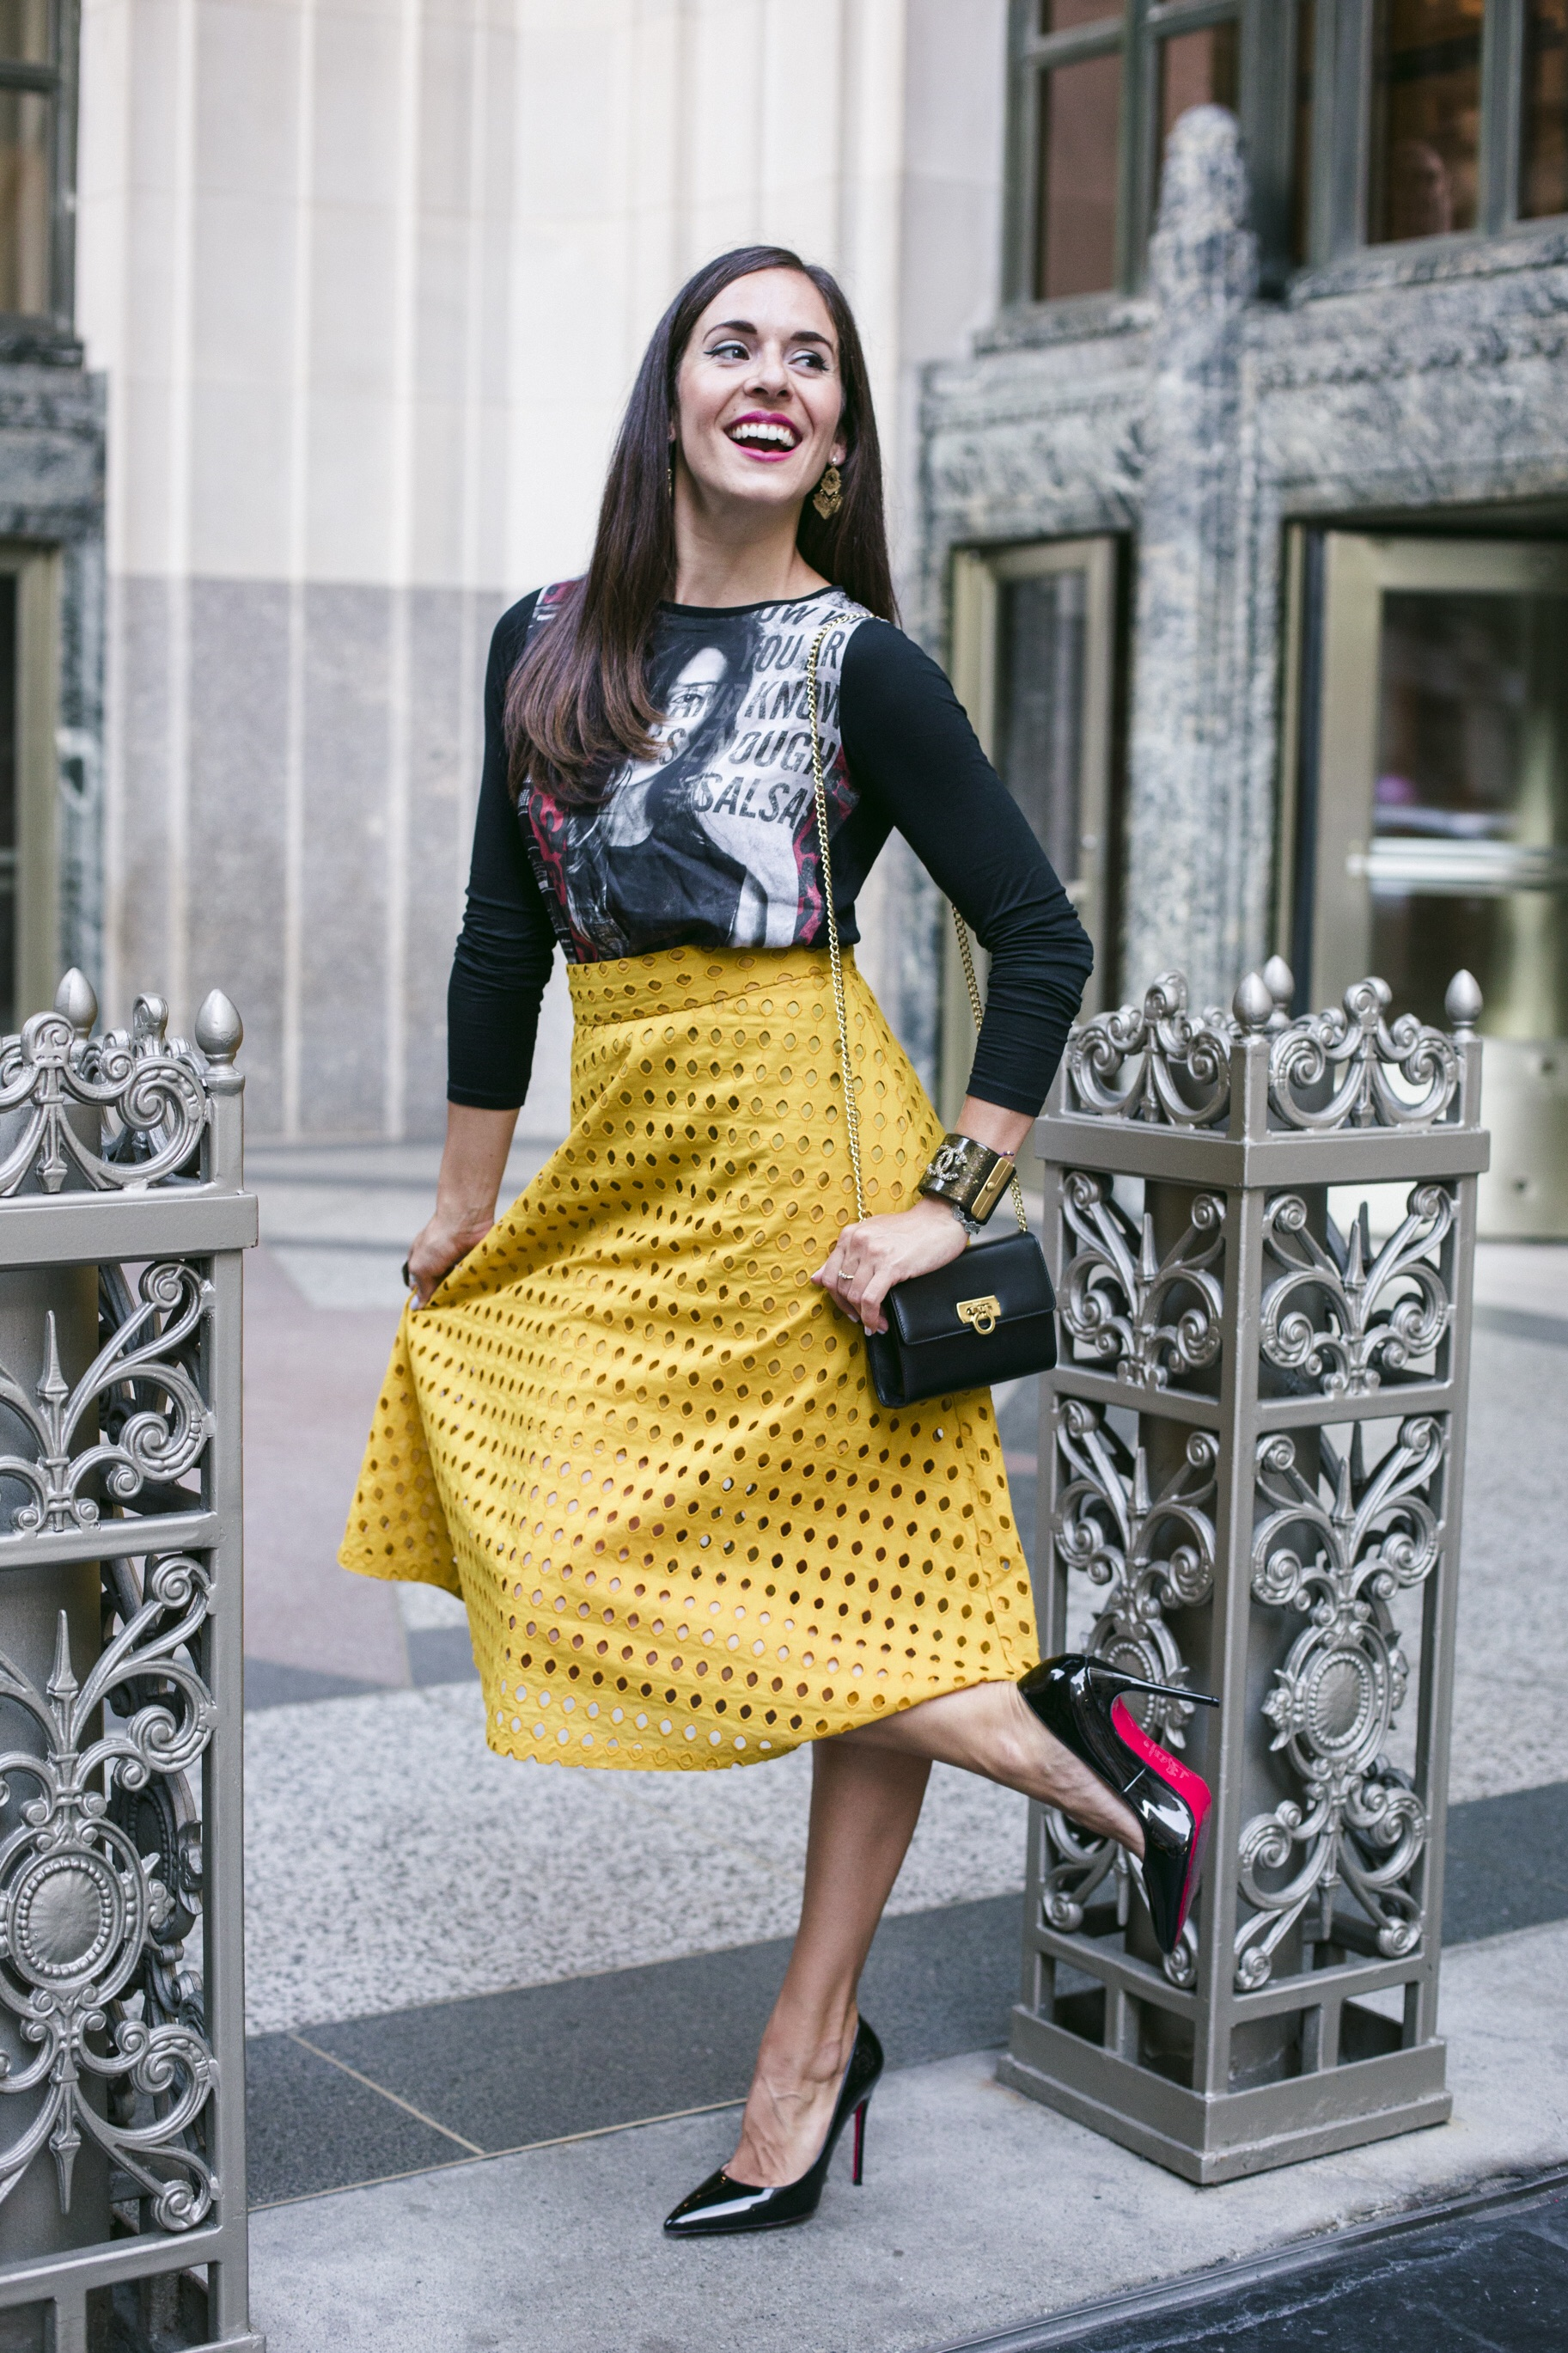 About to hit up the  Desigual  SS17 NYFW runway show wearing a Desi top,  H&M  skirt,  Christian Louboutin  heels,  Chanel  vintage cuff bracelet, and  Salvatore Ferragamo  evening bag. Photography in Gramercy by  Francisco Graciano .